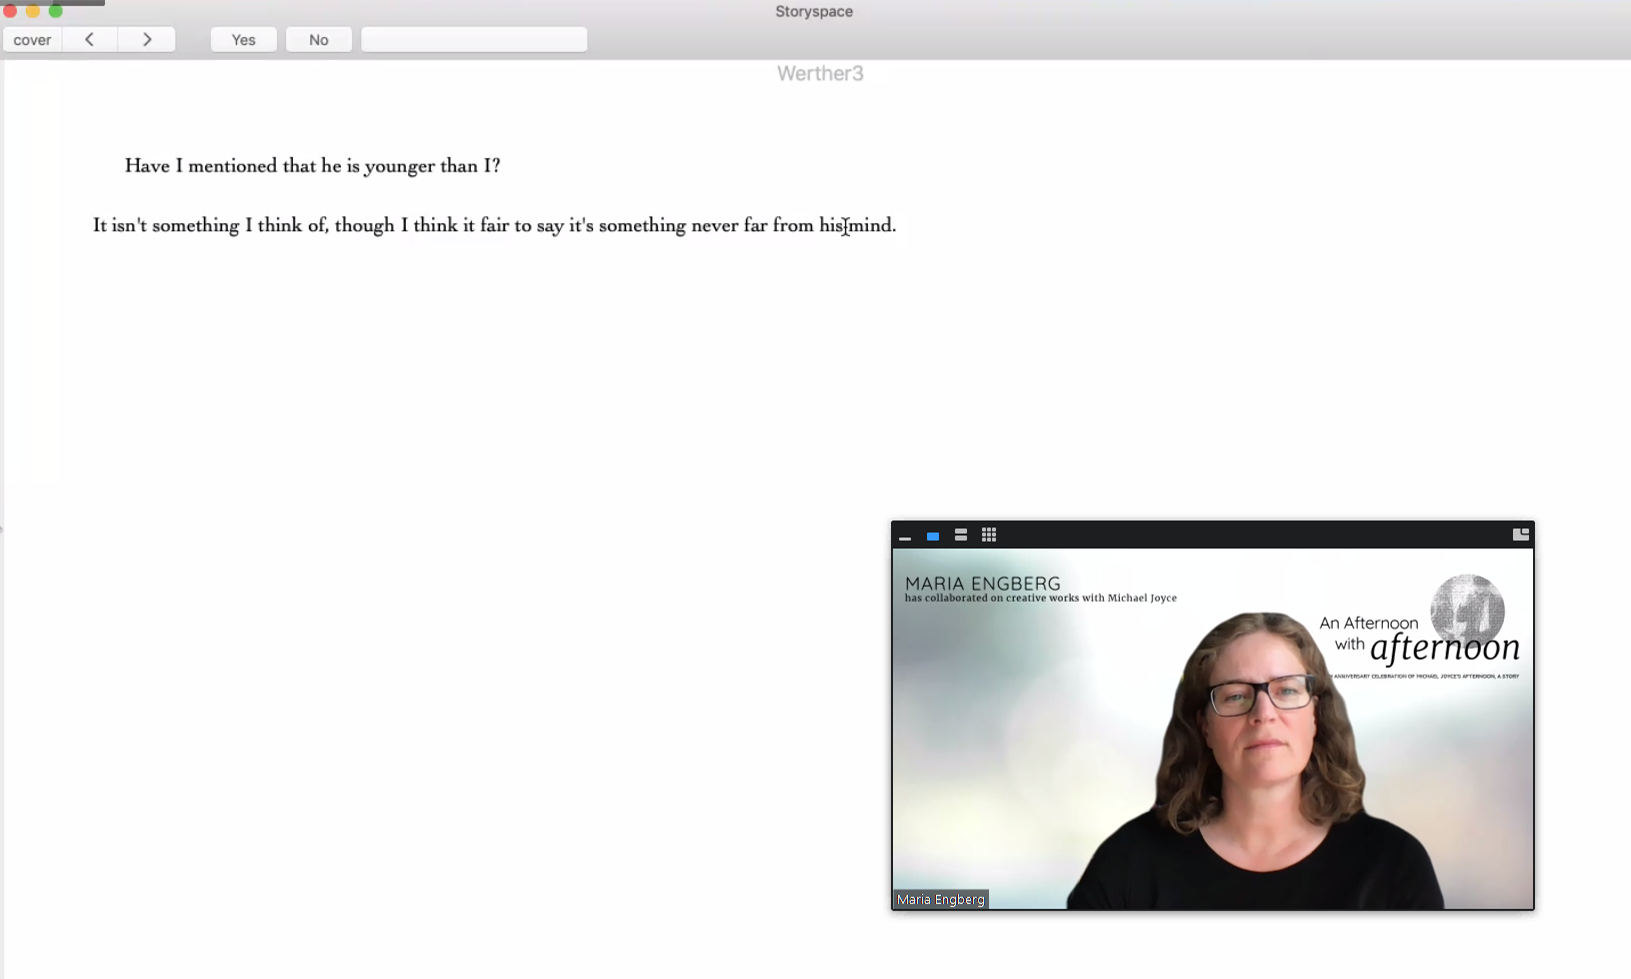 A screenshot of Maria Engberg reading afternoon, a story on Zoom